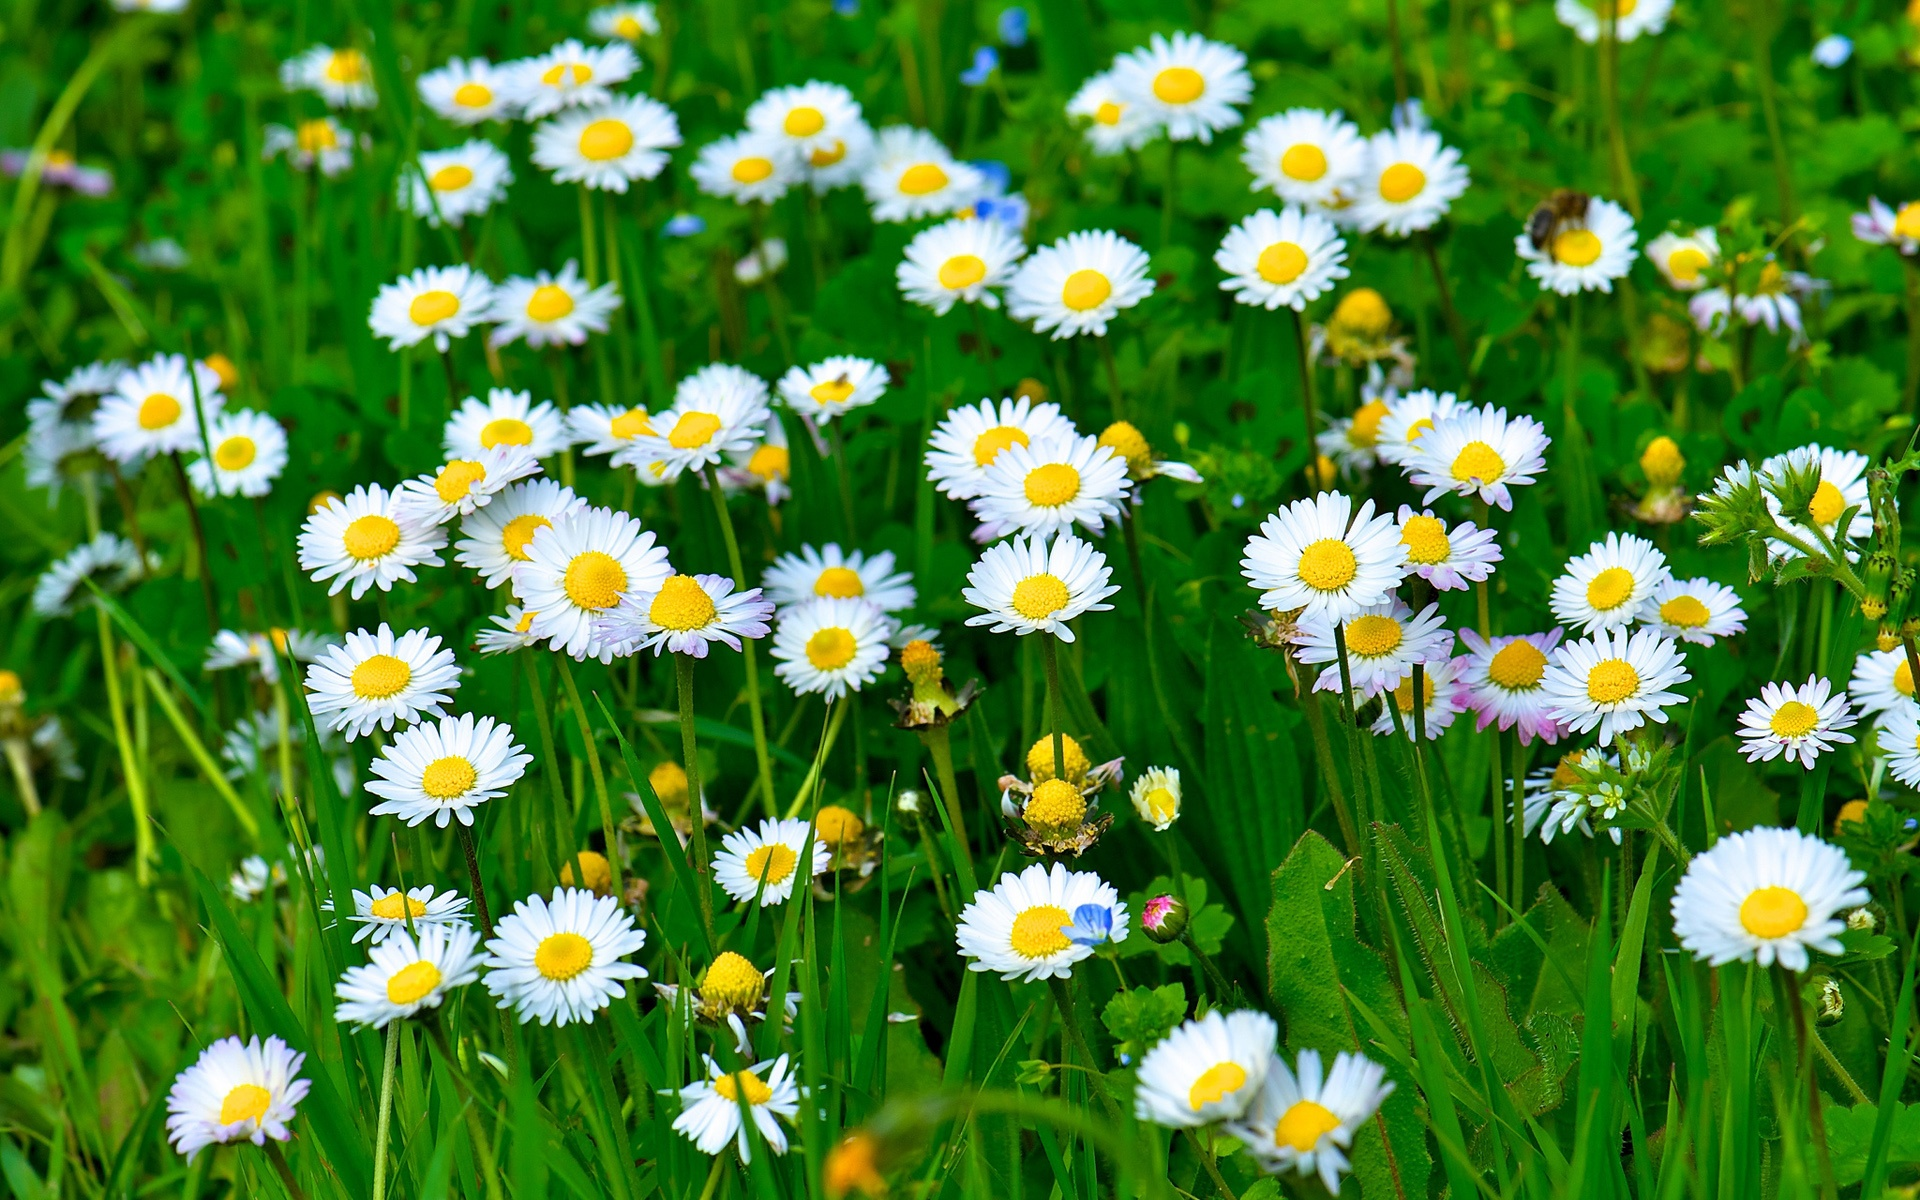 HD-White-Daisy-Flowers-Grass-Leaves-Green-Widescreen-High-Definition-Wallpaper-Download-Free